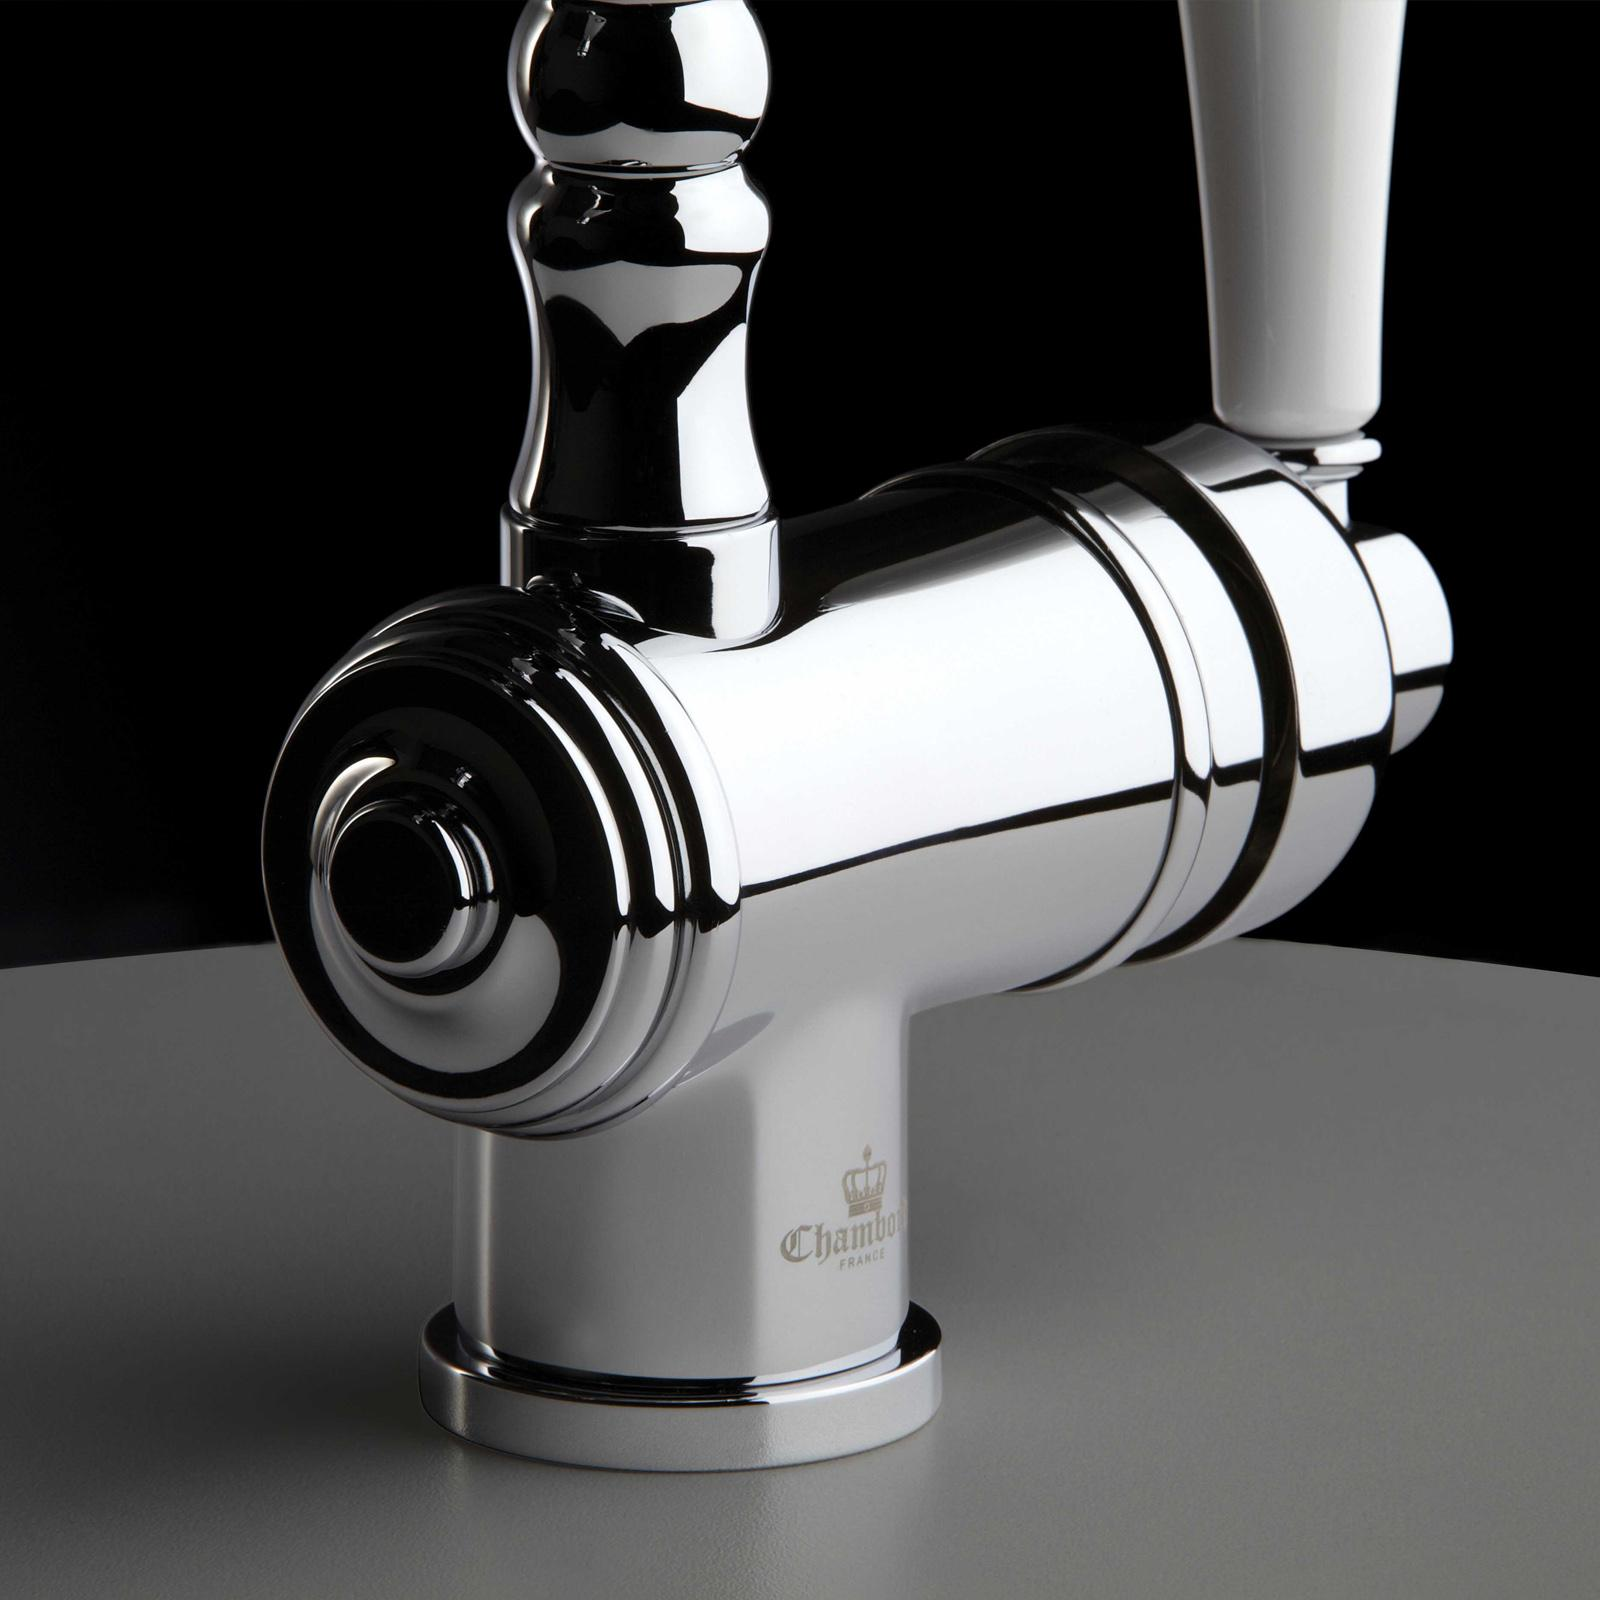 High-quality single lever tap Louise - pull out spray - Chrome - ambience 2